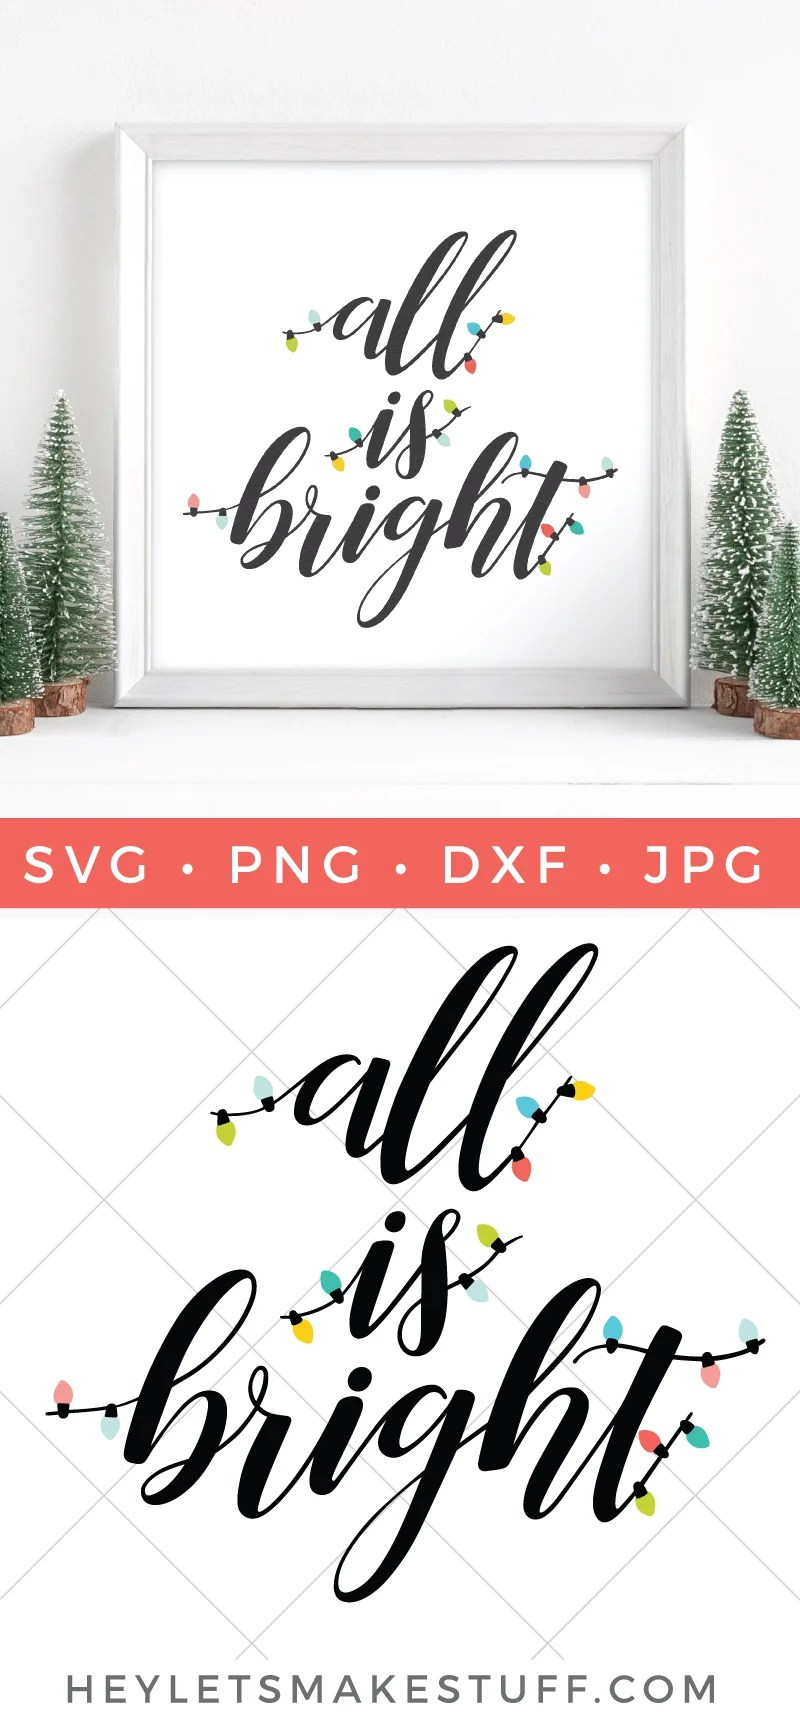 From twinkling Christmas trees to scented candles to strings of outdoor decorations, the holidays are full of light. This All is Bright SVG will light up all your holiday crafts and projects. via @heyletsmakestuf